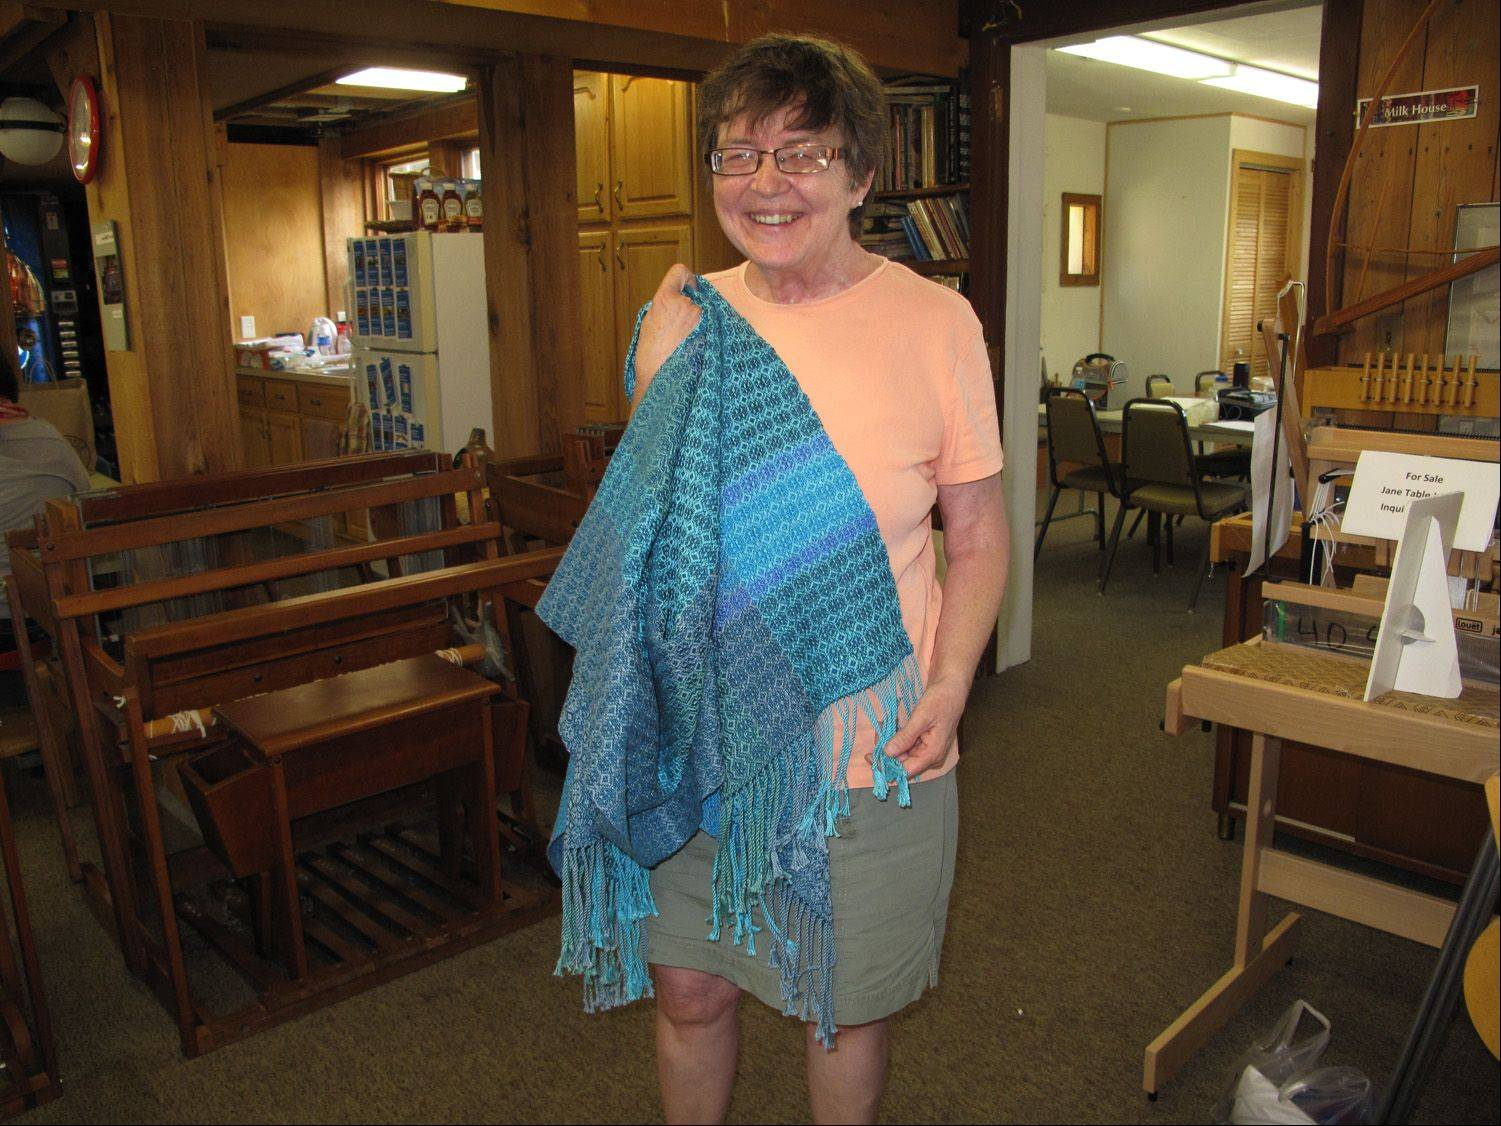 "Although Selinda Chasteen of DeKalb lost her sight through a stroke, she has learned to weave at Fine Line Creative Arts Center in St. Charles, which offers a class in weaving for the visually impaired, and has gained friends and mentors in the process. ""This class gave me hope,"" Chasteen said."